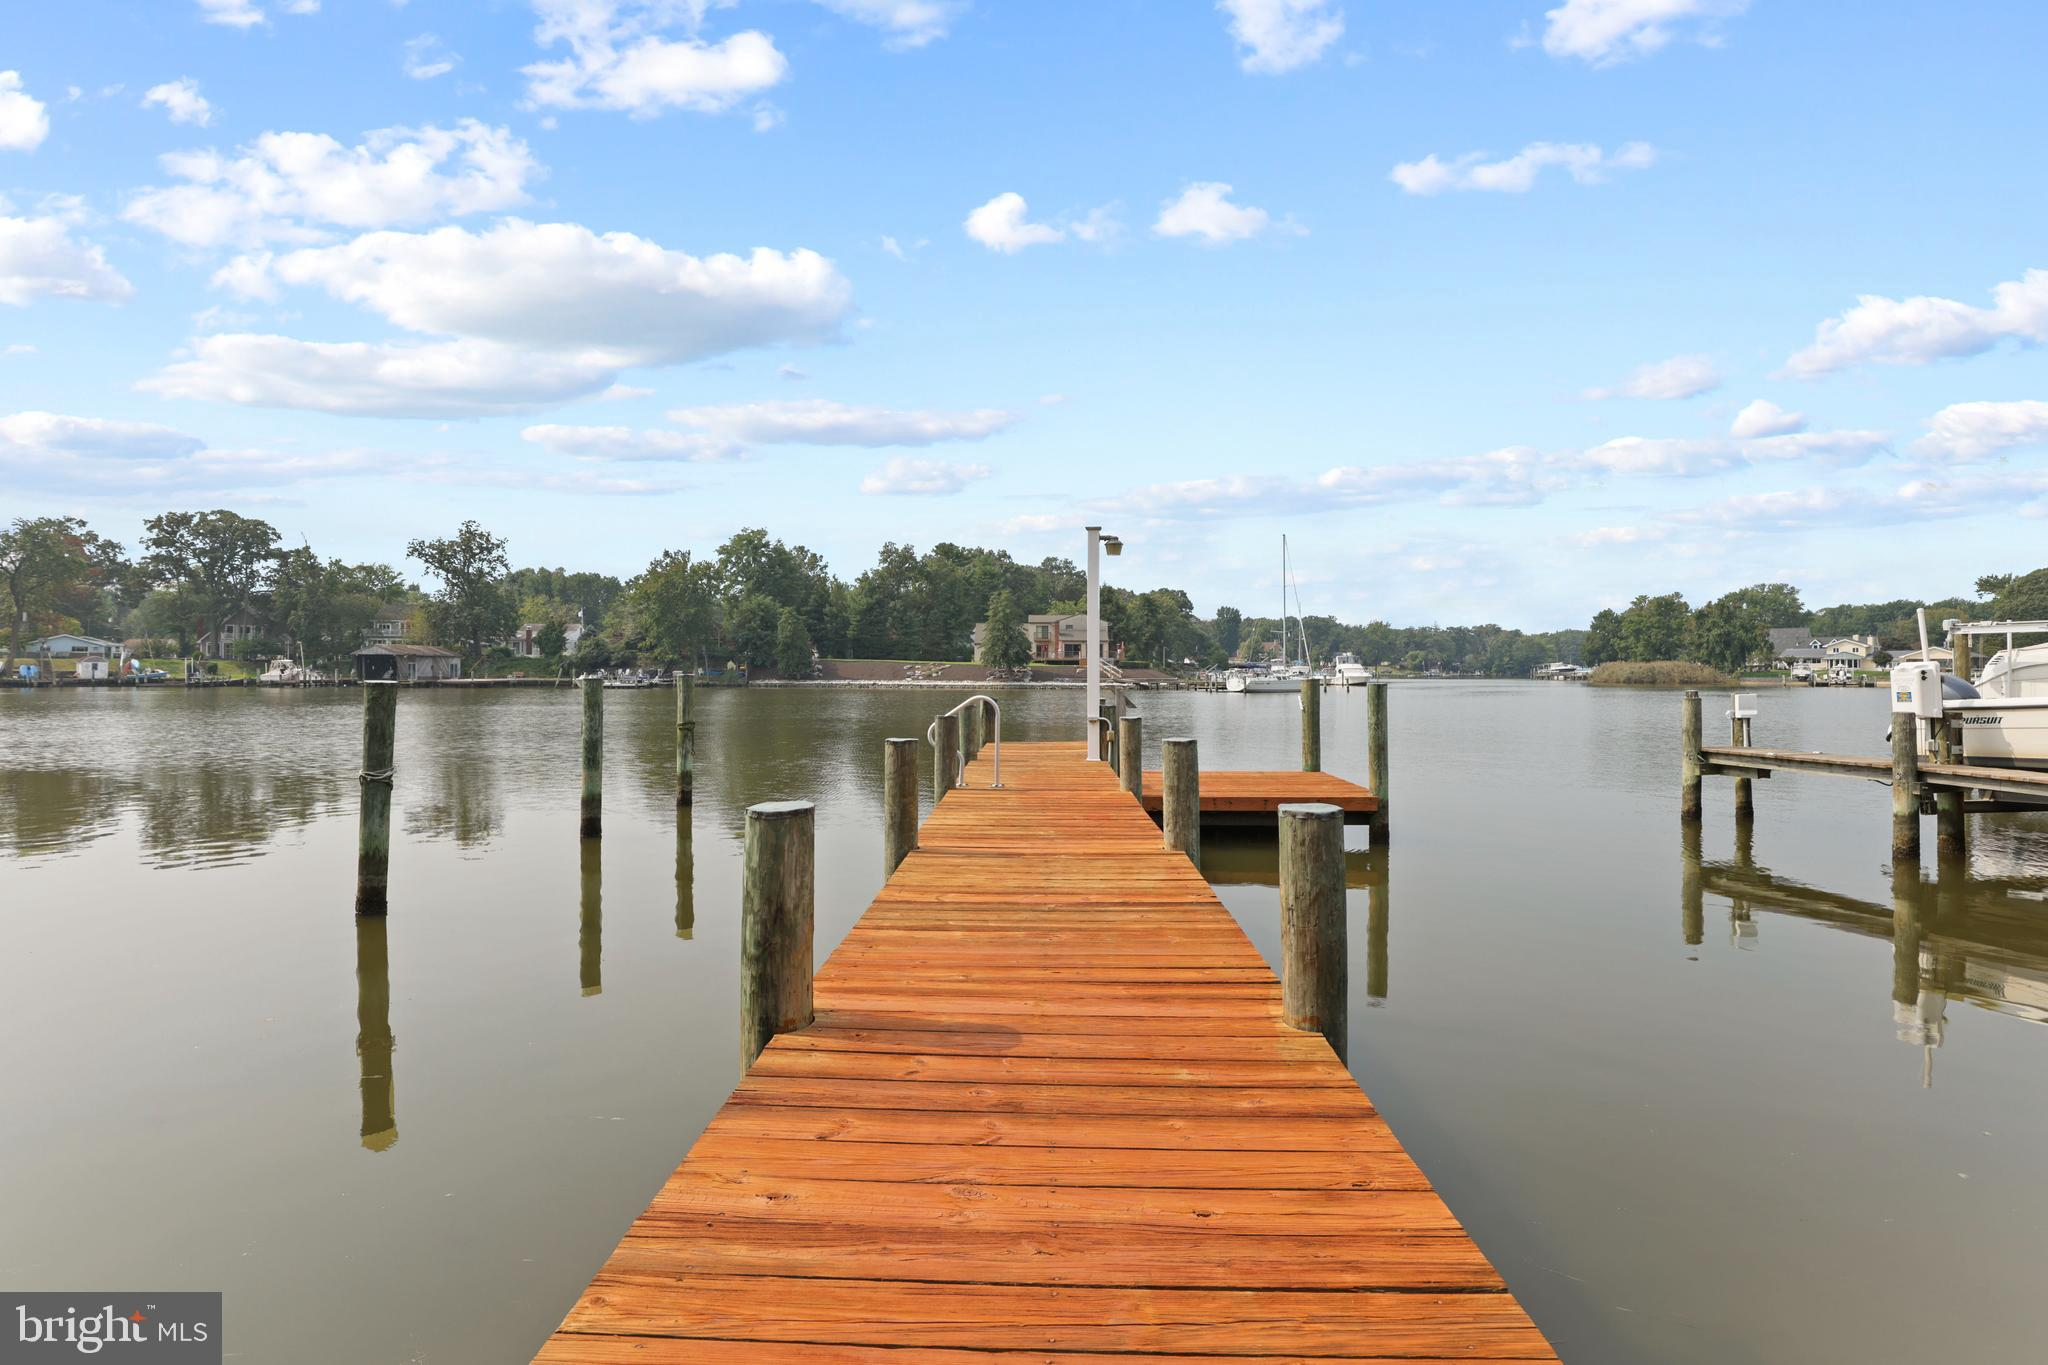 Now is your chance to own a superior waterfront property located on Wharf Creek.  This is a double lot with approximately 50 feet of waterfront frontage that is a quick boat ride to get to the Chesapeake Bay. Envision yourself enjoying a warm drink in the morning as the sun rises over the glistening waters surrounding your private pier.  The private pier is equipped with water and electricity all the way to the end of the pier! Park your boat and invite a fellow boater to park their boat in either of the two available boat slips.  With an MLW of 6 feet, you can keep your boat close to home and ready to launch at a moment's notice.   Enjoy a dip in the water off the side of the platform which is ideal for sunbathing, fishing, crabbing, or enjoying the cool breeze from the Bay winds. The boathouse features a water heater for a relaxing outdoor shower experience. The property includes a boathouse and a bungalow.  The home has been prepared to be razed to build a larger home.  Additionally, Anne Arundel County has approved a site plan for a larger home which includes approval for an upgraded septic system.  The surrounding community offers two local parks that overlook the Bayfront. A voluntary community association offers access to the community boat ramp for only $25 a year! Book your appointment today for your chance to own a rarely available lot located within the Chesapeake Watershed!